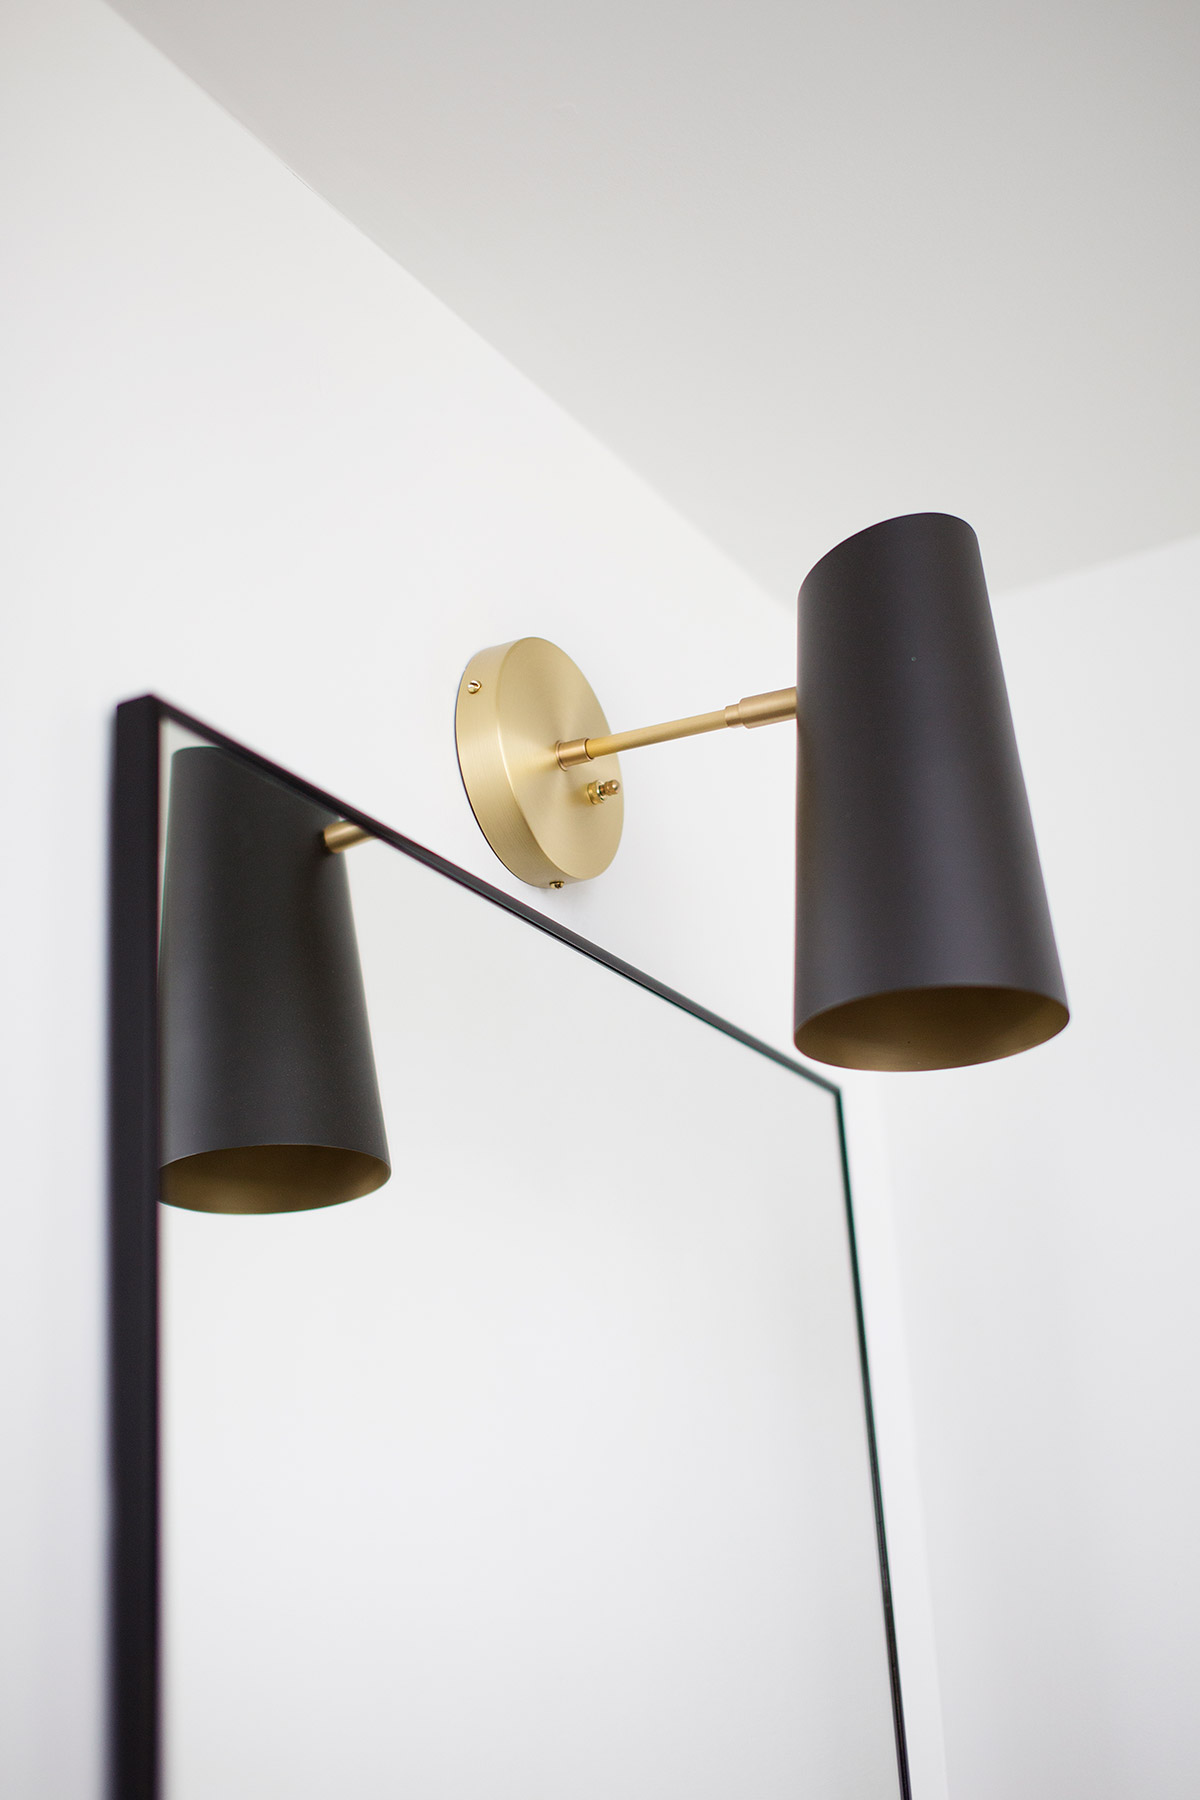 Midcentury modern brass sconce with black shade in master bathroom